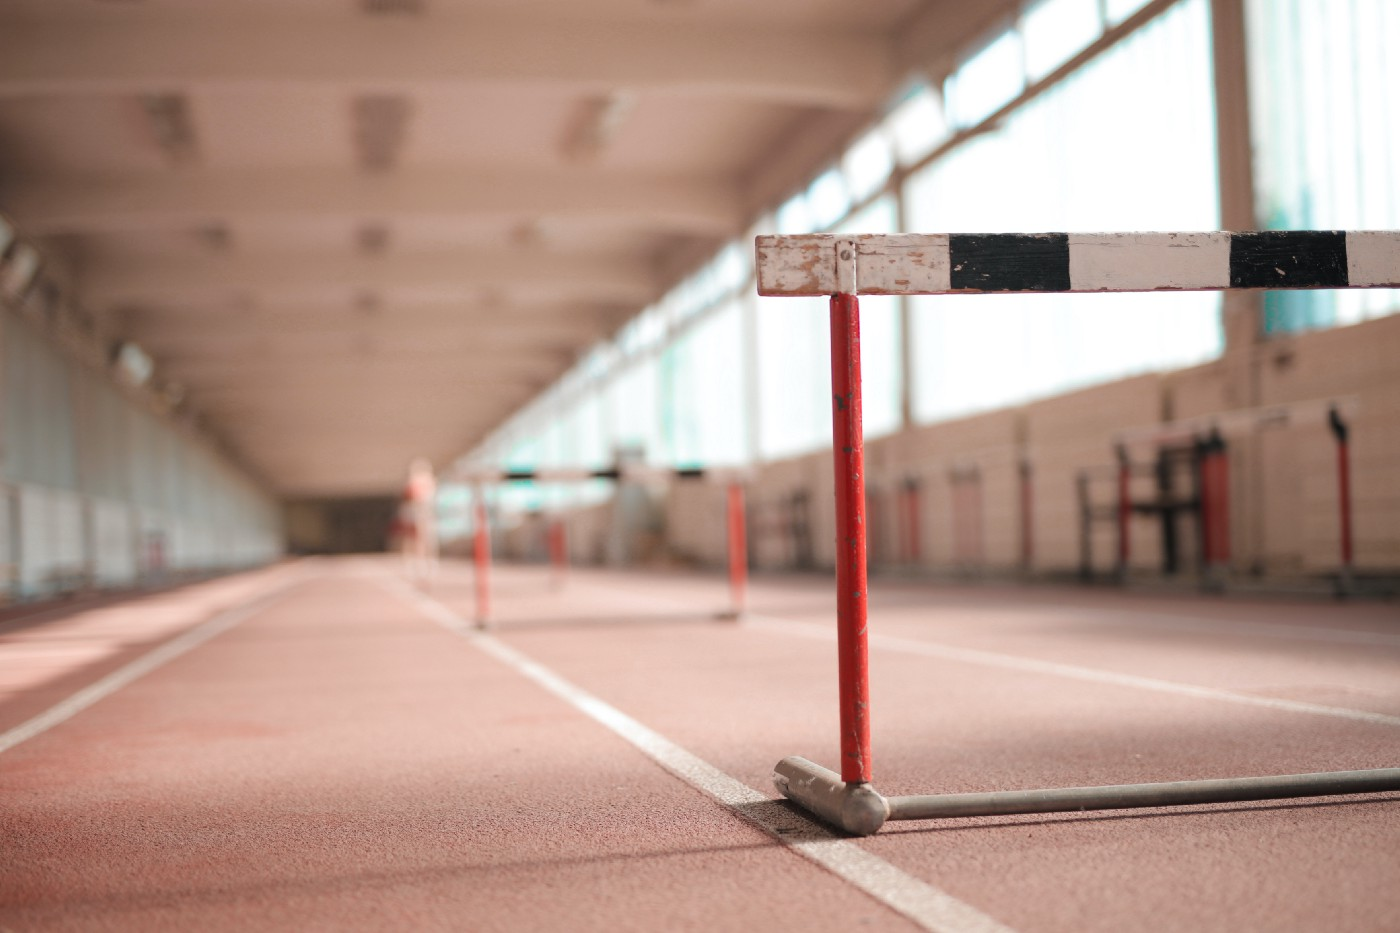 A brown indoor track is lit by daylight. In the foreground, a hurdle sits across one of the track lanes.